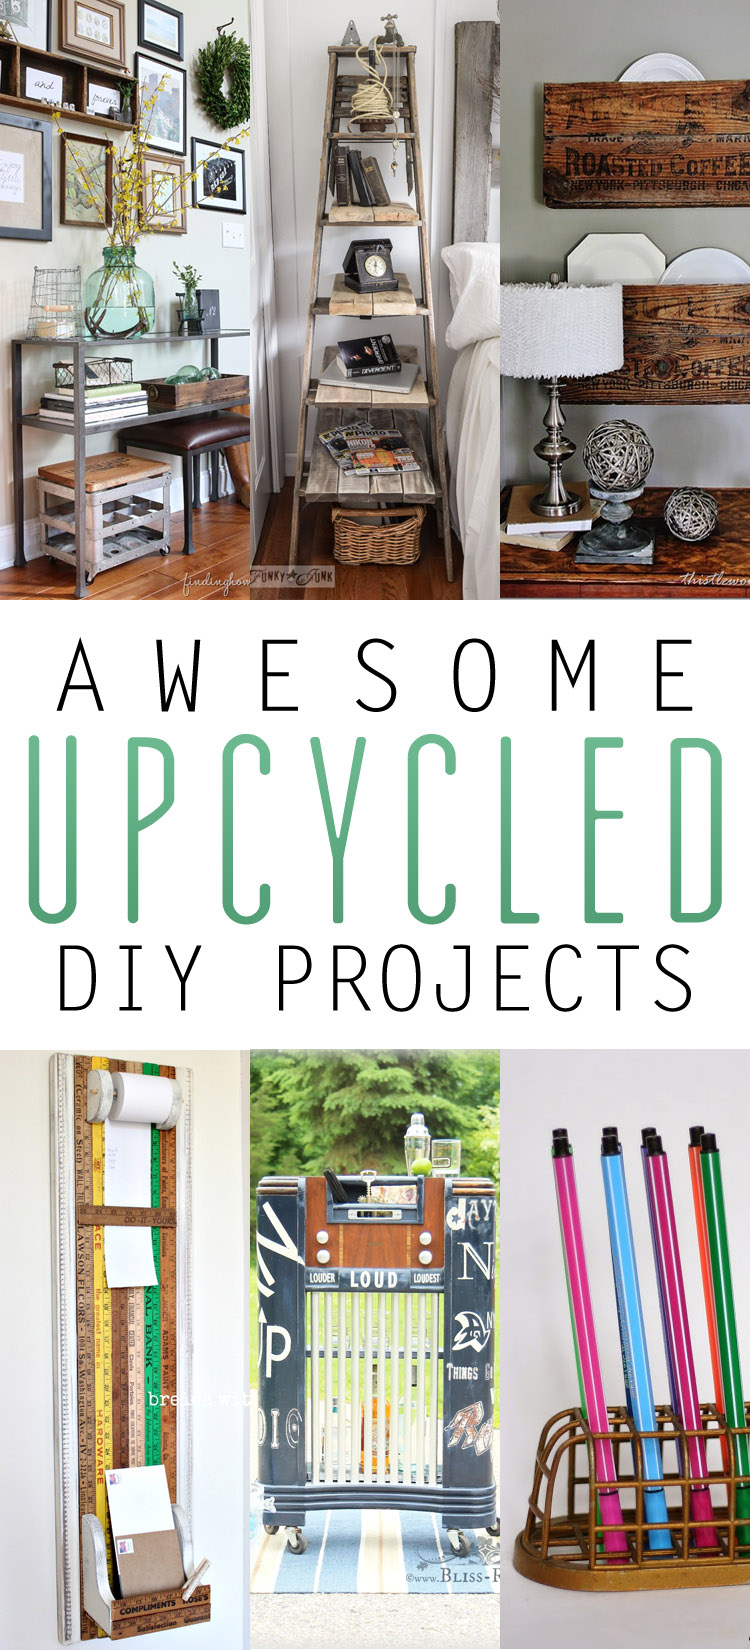 Awesome upcycled diy projects the cottage market for Epic diy projects